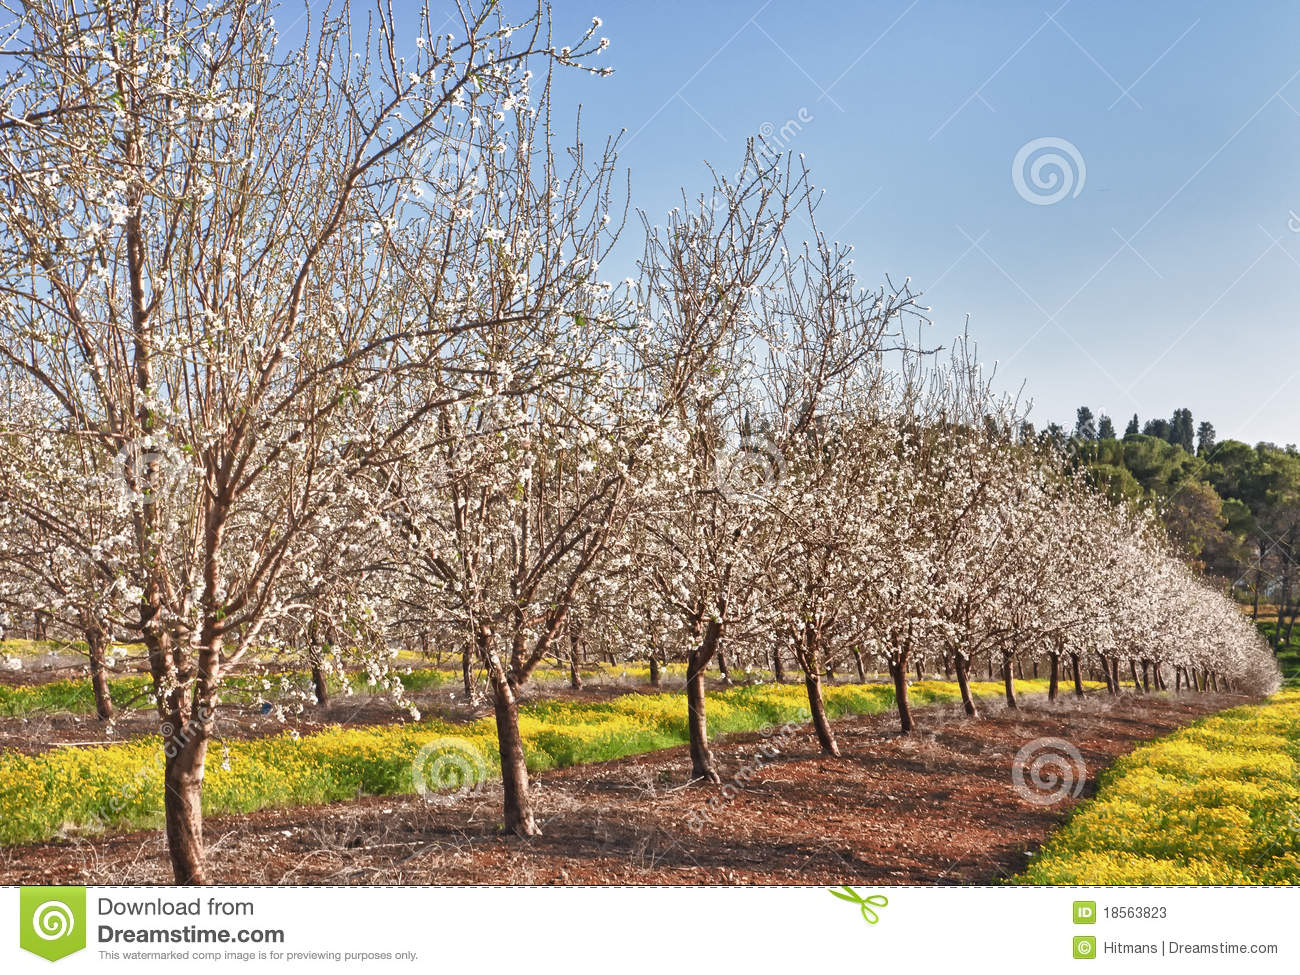 Almond tree field stock image. Image of background, flower - 18563823